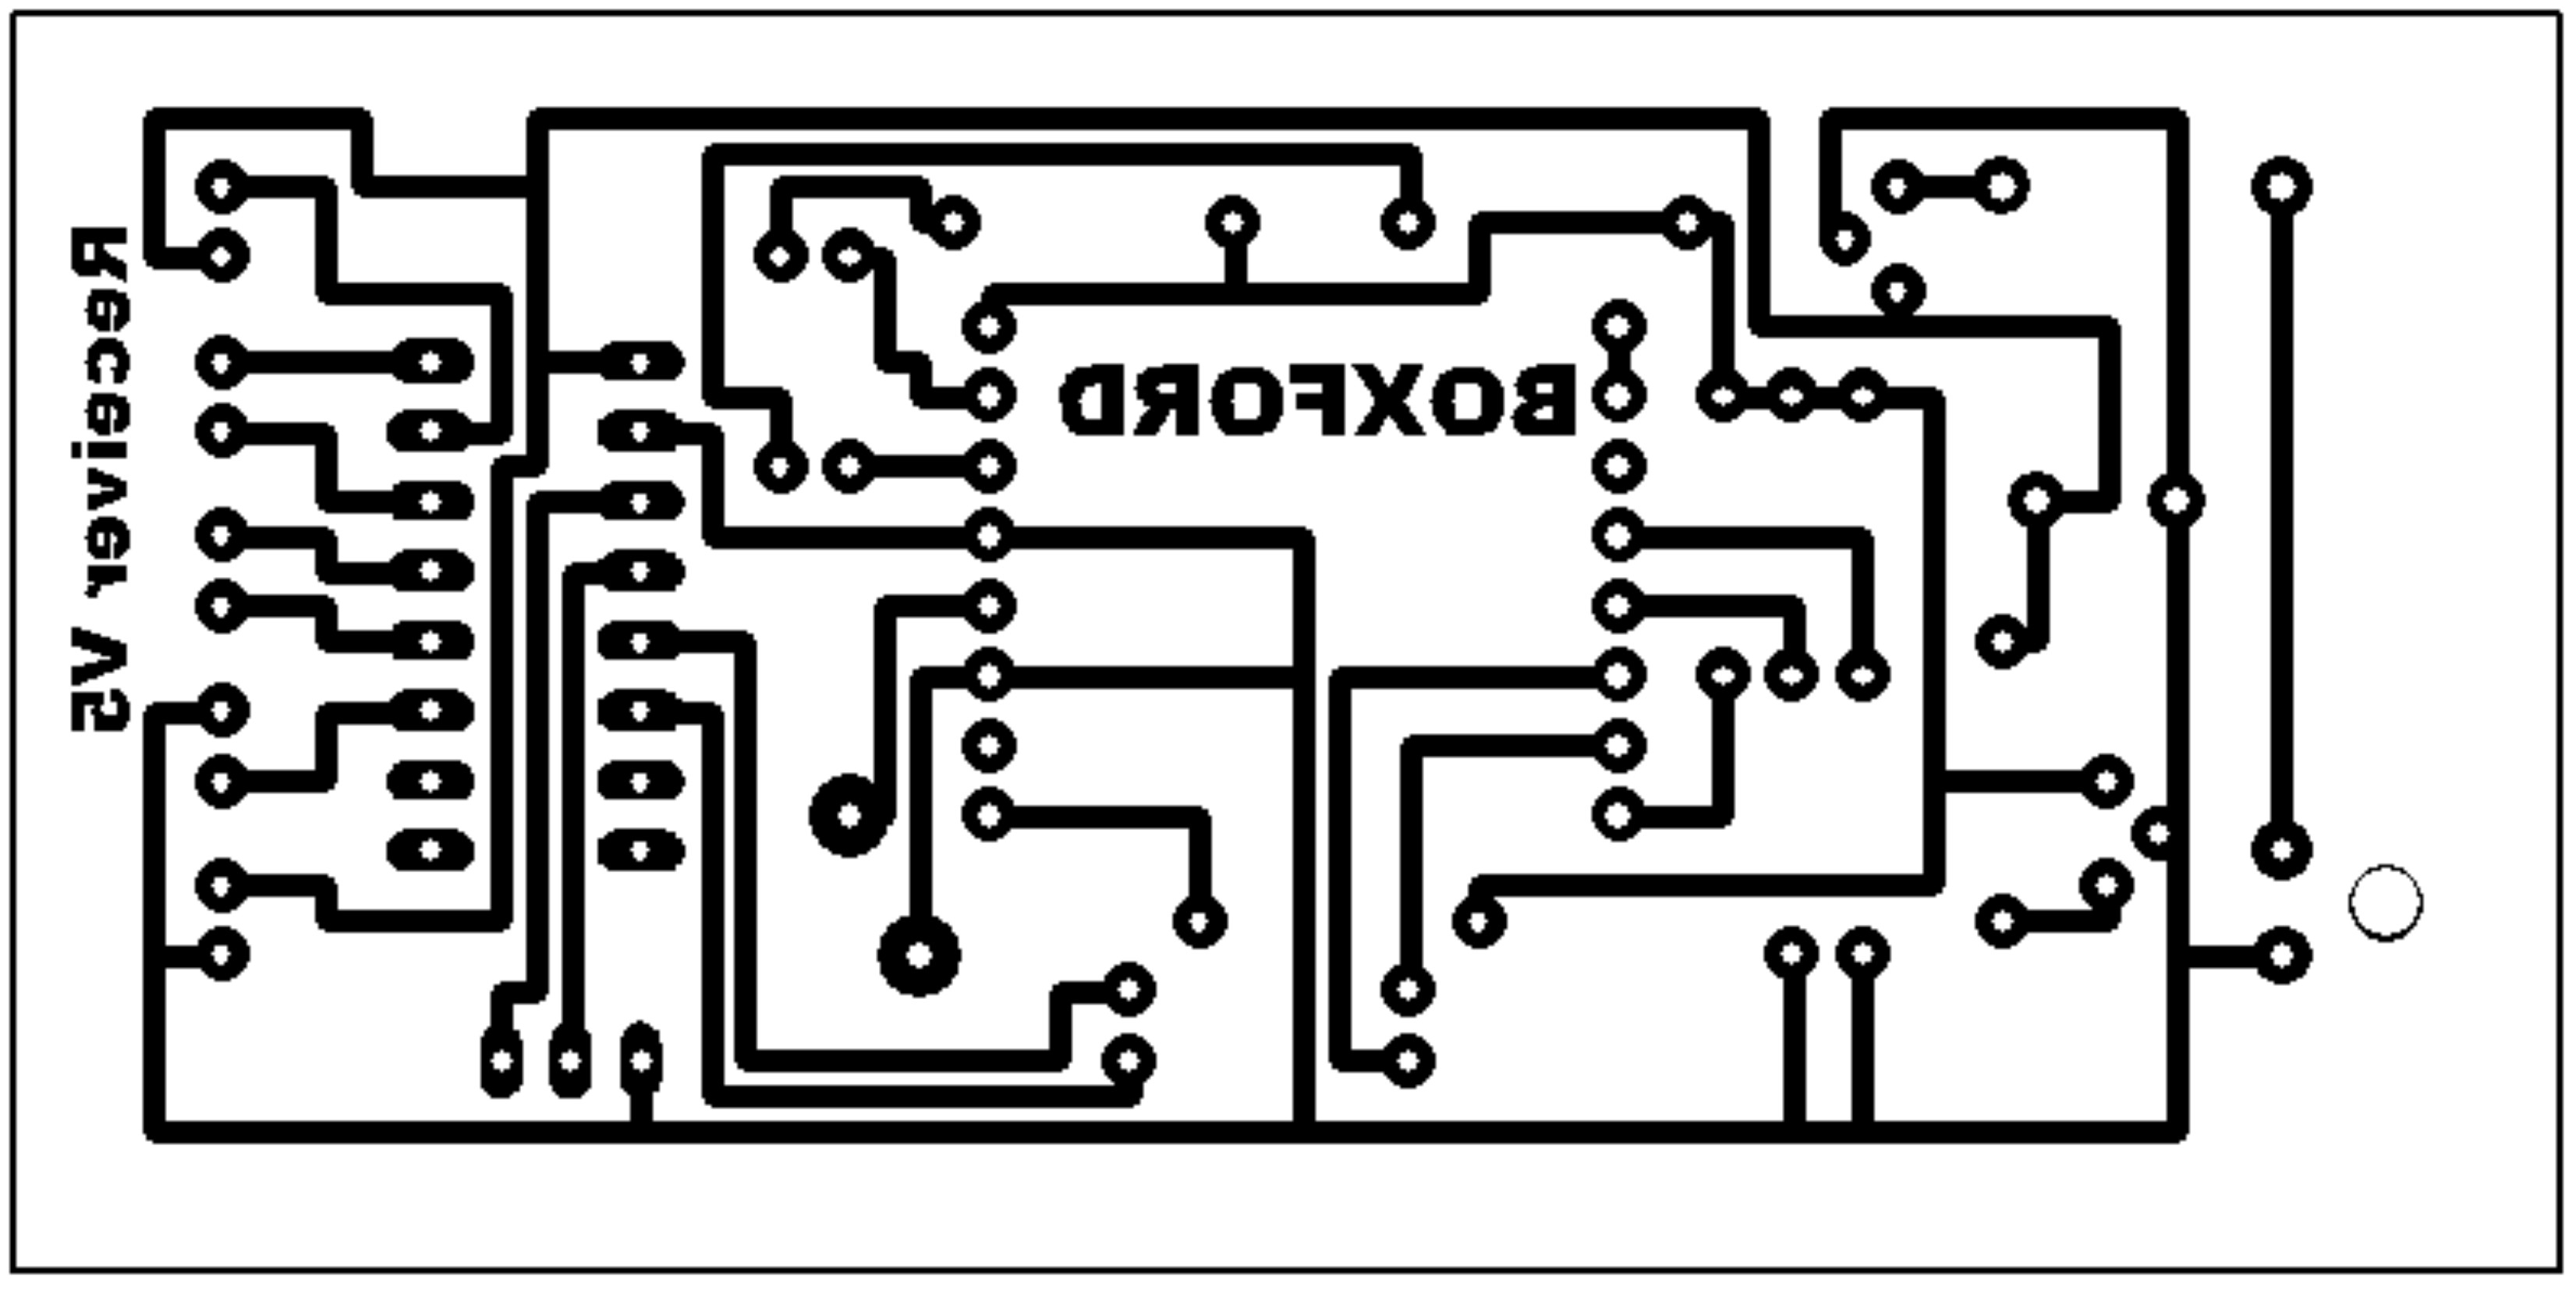 Boxford Resources System Here S A Simple Rain Detector Circuit It Uses Sensor Made Of Small Artwork As Jpeg Download